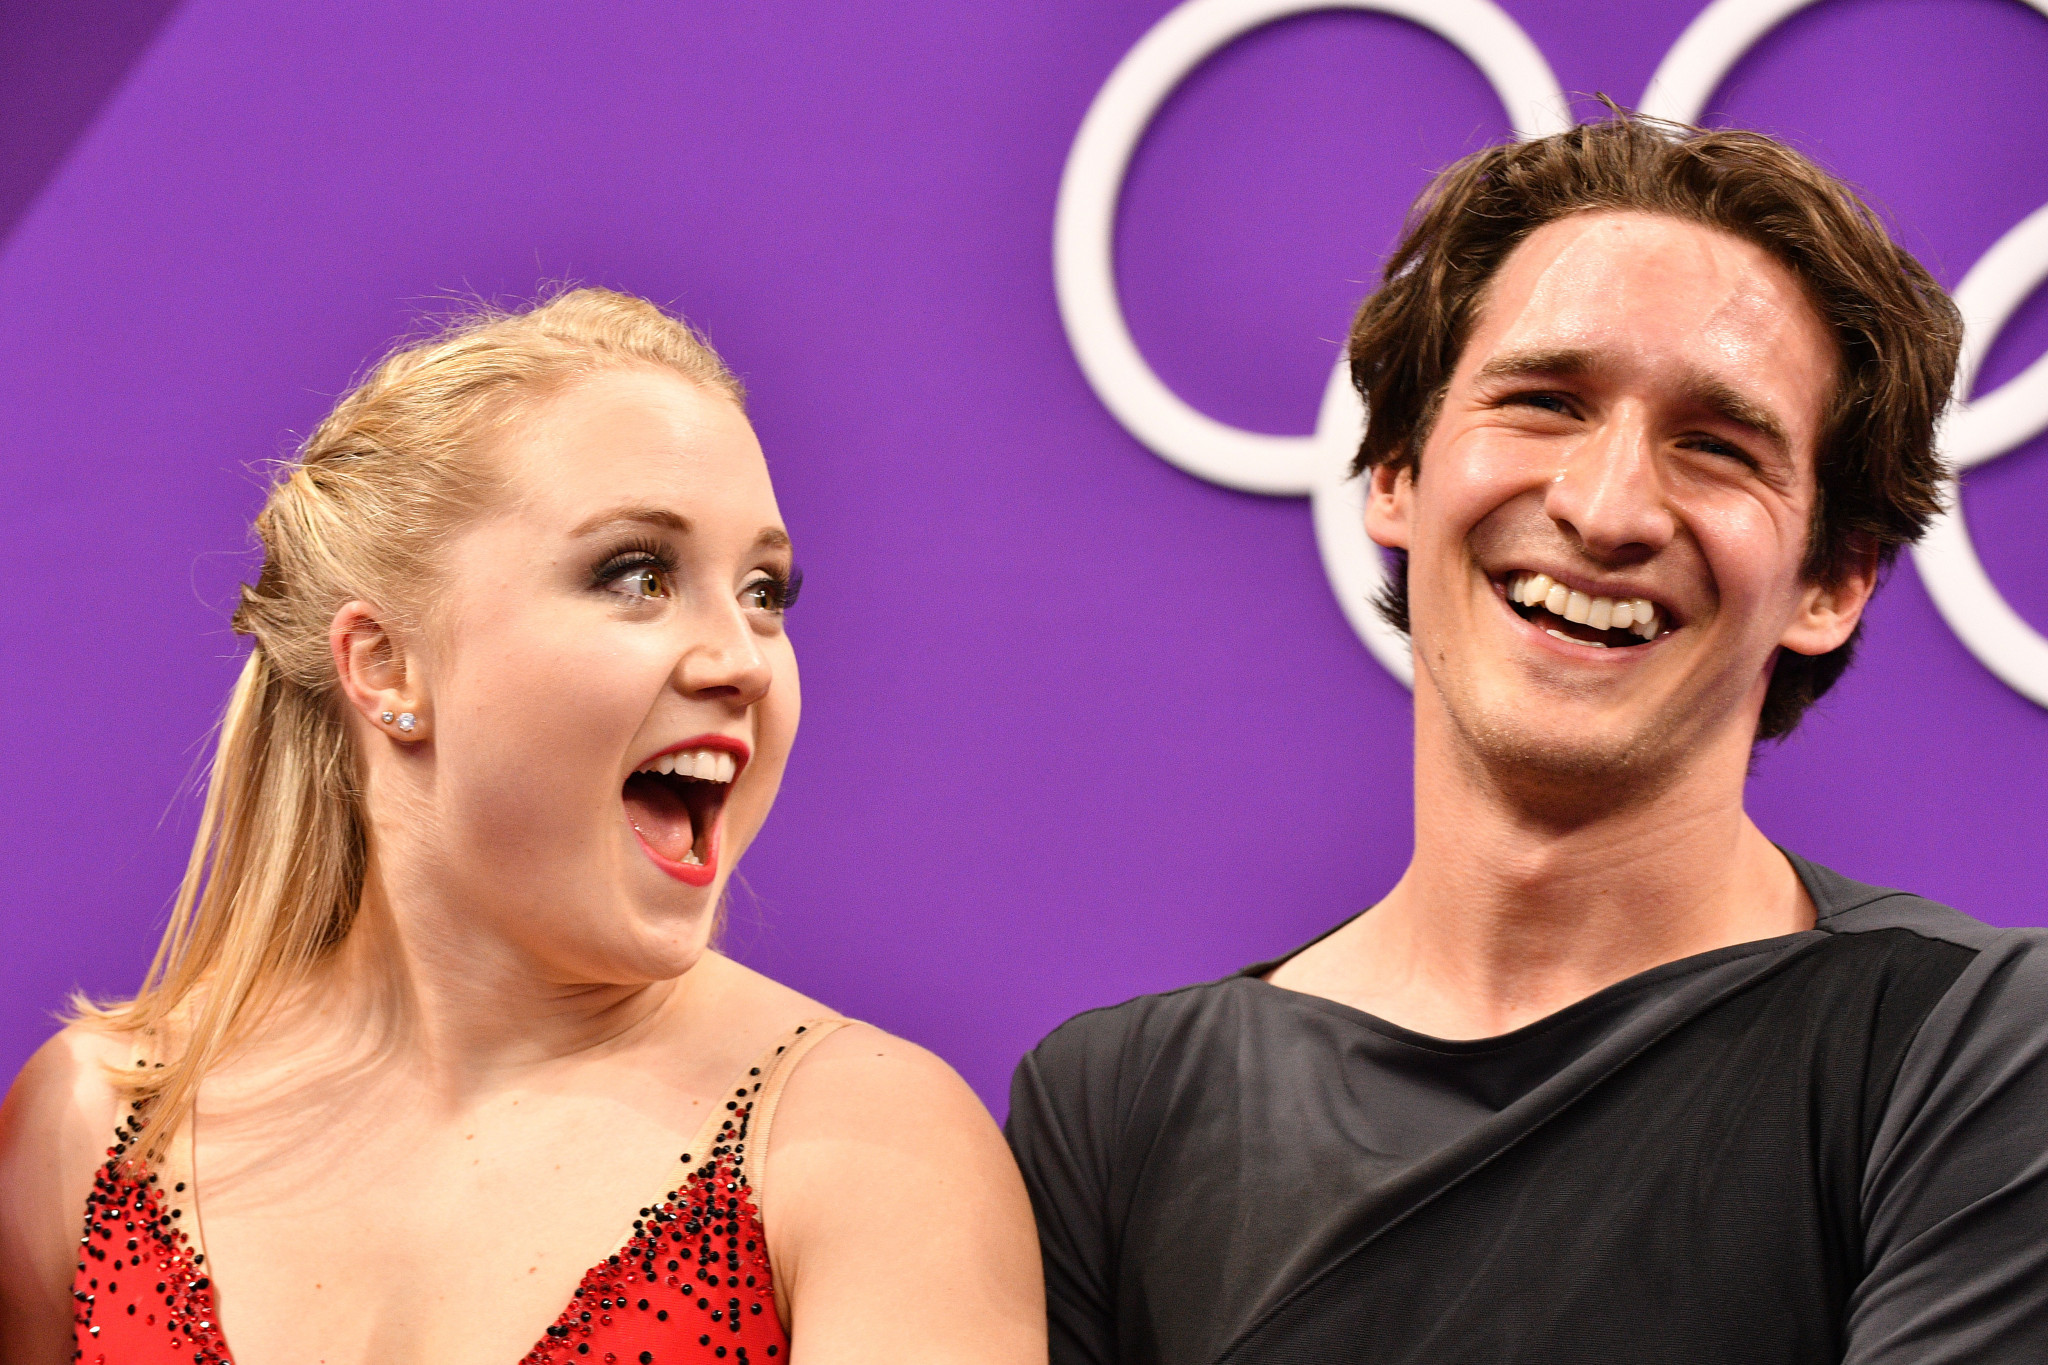 Canadian Olympians end figure skating partnership